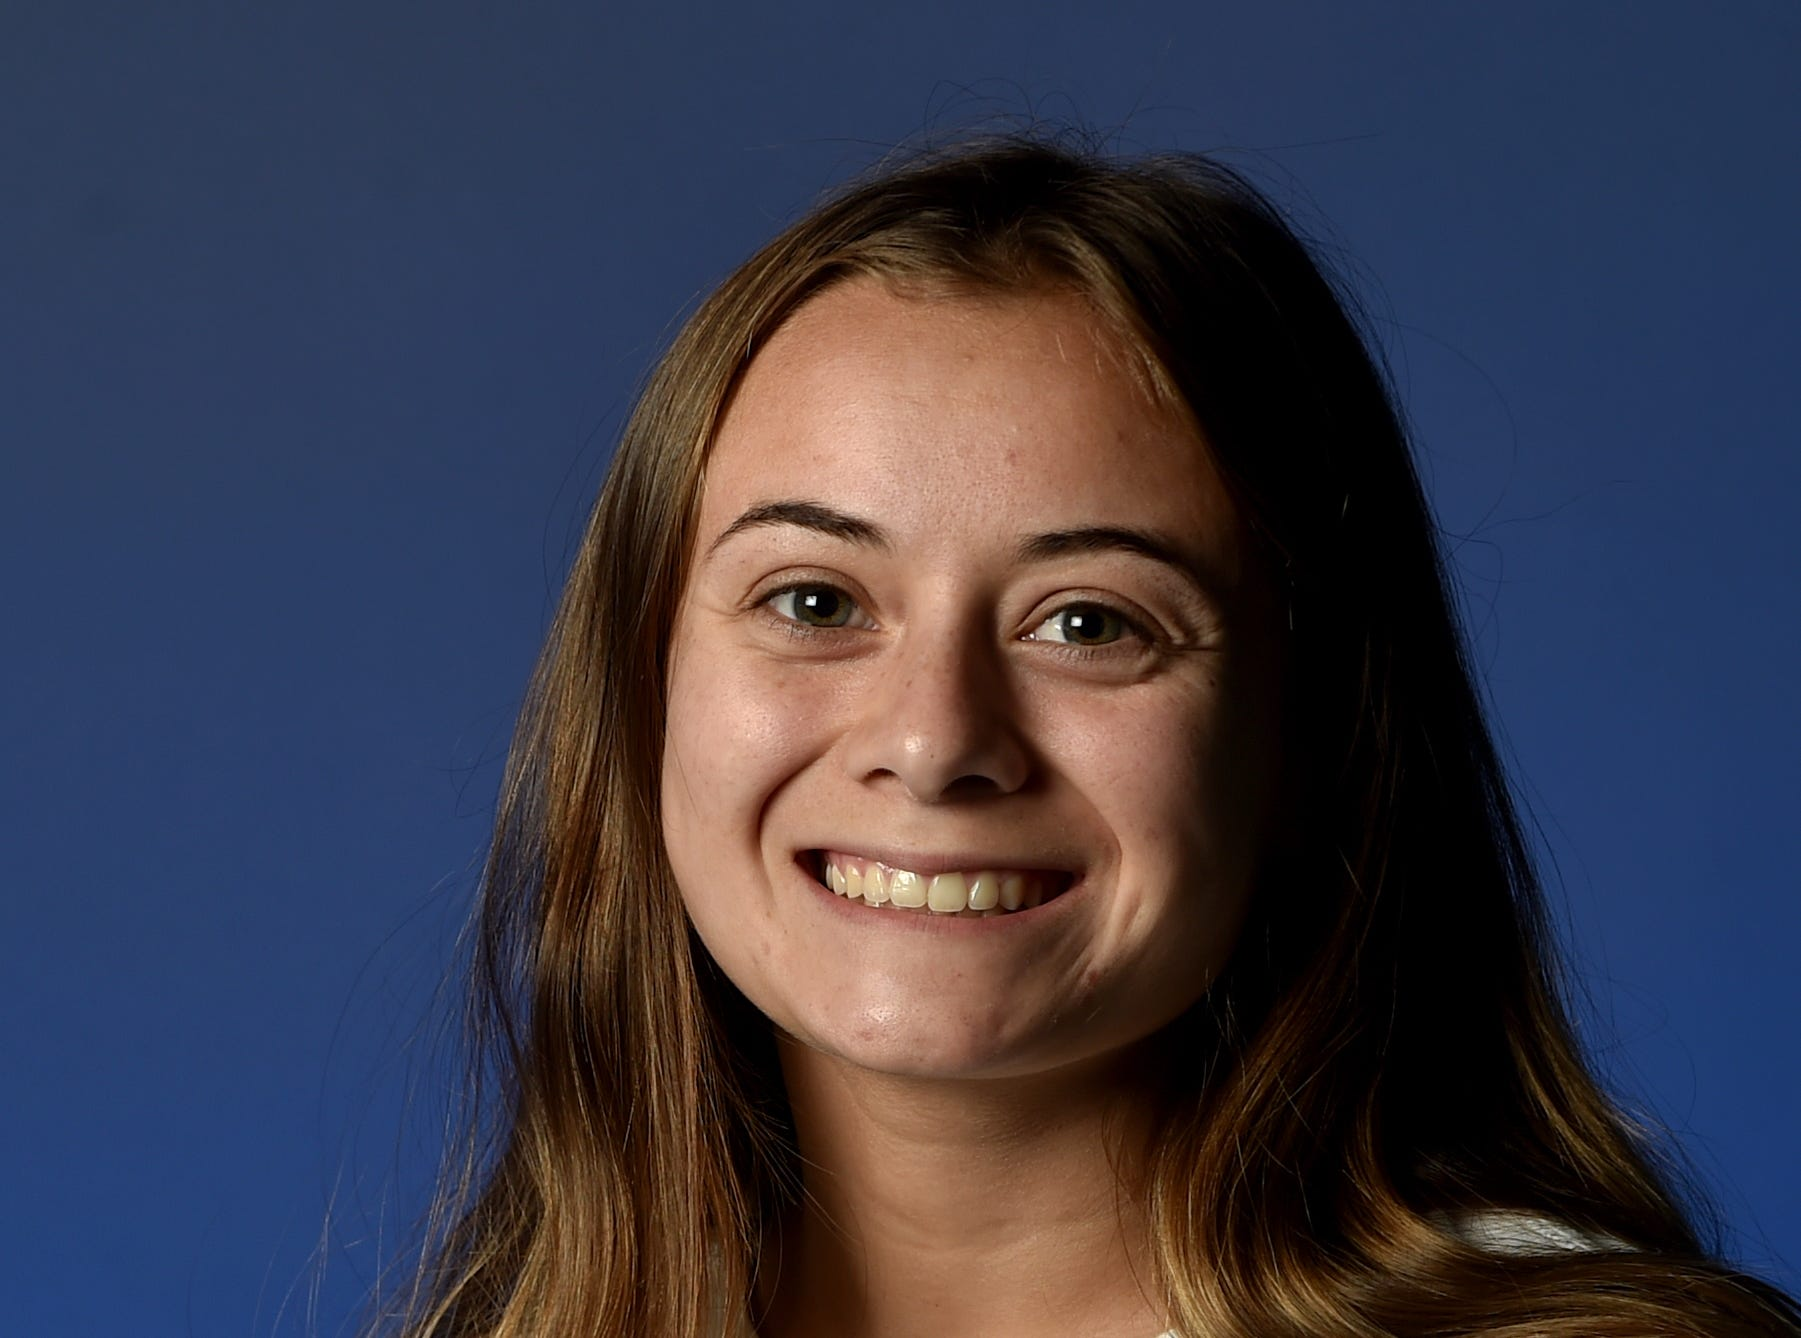 "HALEY HOWARD, Buena: The 5-foot senior starred at the back for Buena. The first-team All-Pacific View selection was dangerous on both sides of the field, scoring 13 goals. She scored the goal that beat Fillmore, 1-0, in the Buena tournament. Howard showed her versatility in the senior all-star game by starting at fullback for Ventura County. She has committed to play for Ottawa University in Arizona. She enjoys watching ""The Good Doctor,"" eating al pastor tacos and listening to The Weeknd. She roots for FC Barcelona and U.S. women's national team star Tobin Heath is her favorite athlete."